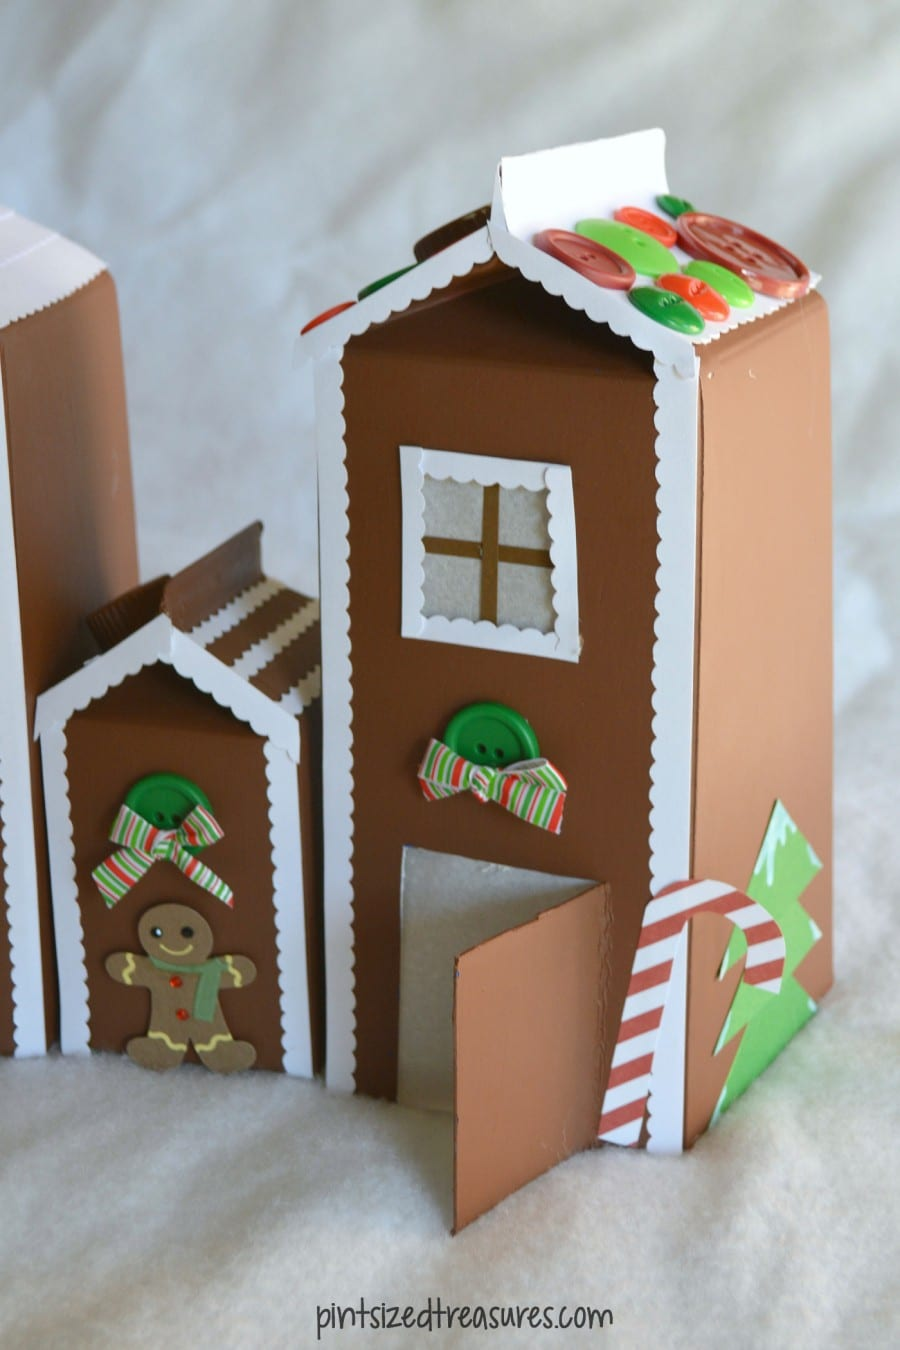 Recycled Carton Gingerbread House 183 Pint Sized Treasures